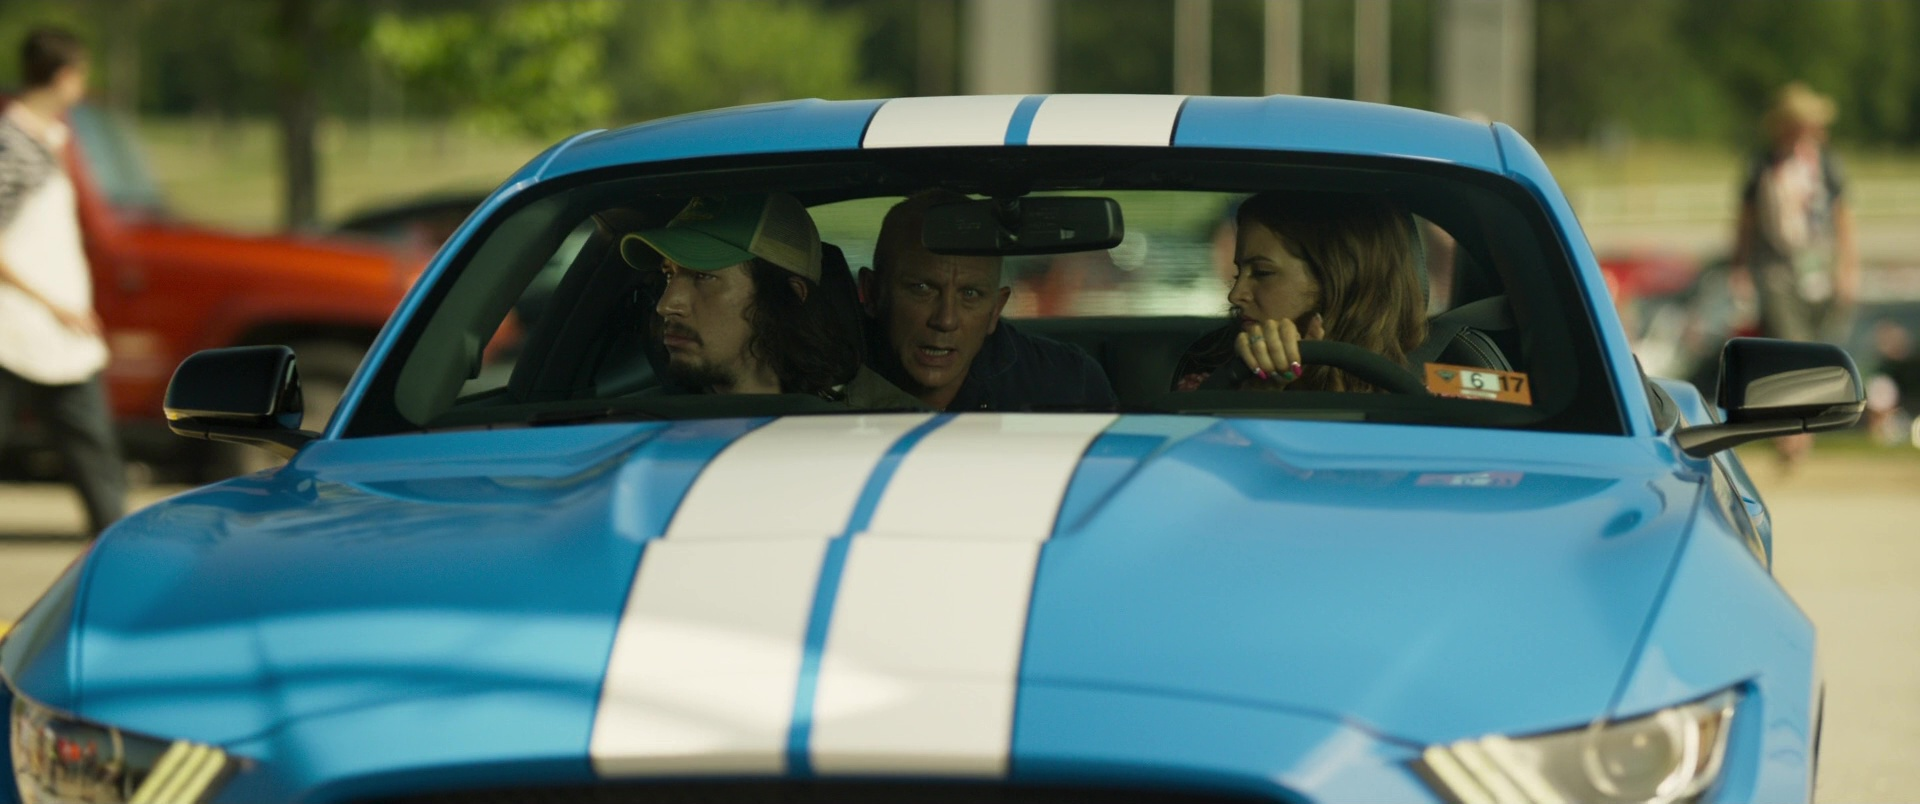 Ford Mustang Shelby GT350 Blue Sports Car Driven by Riley ...